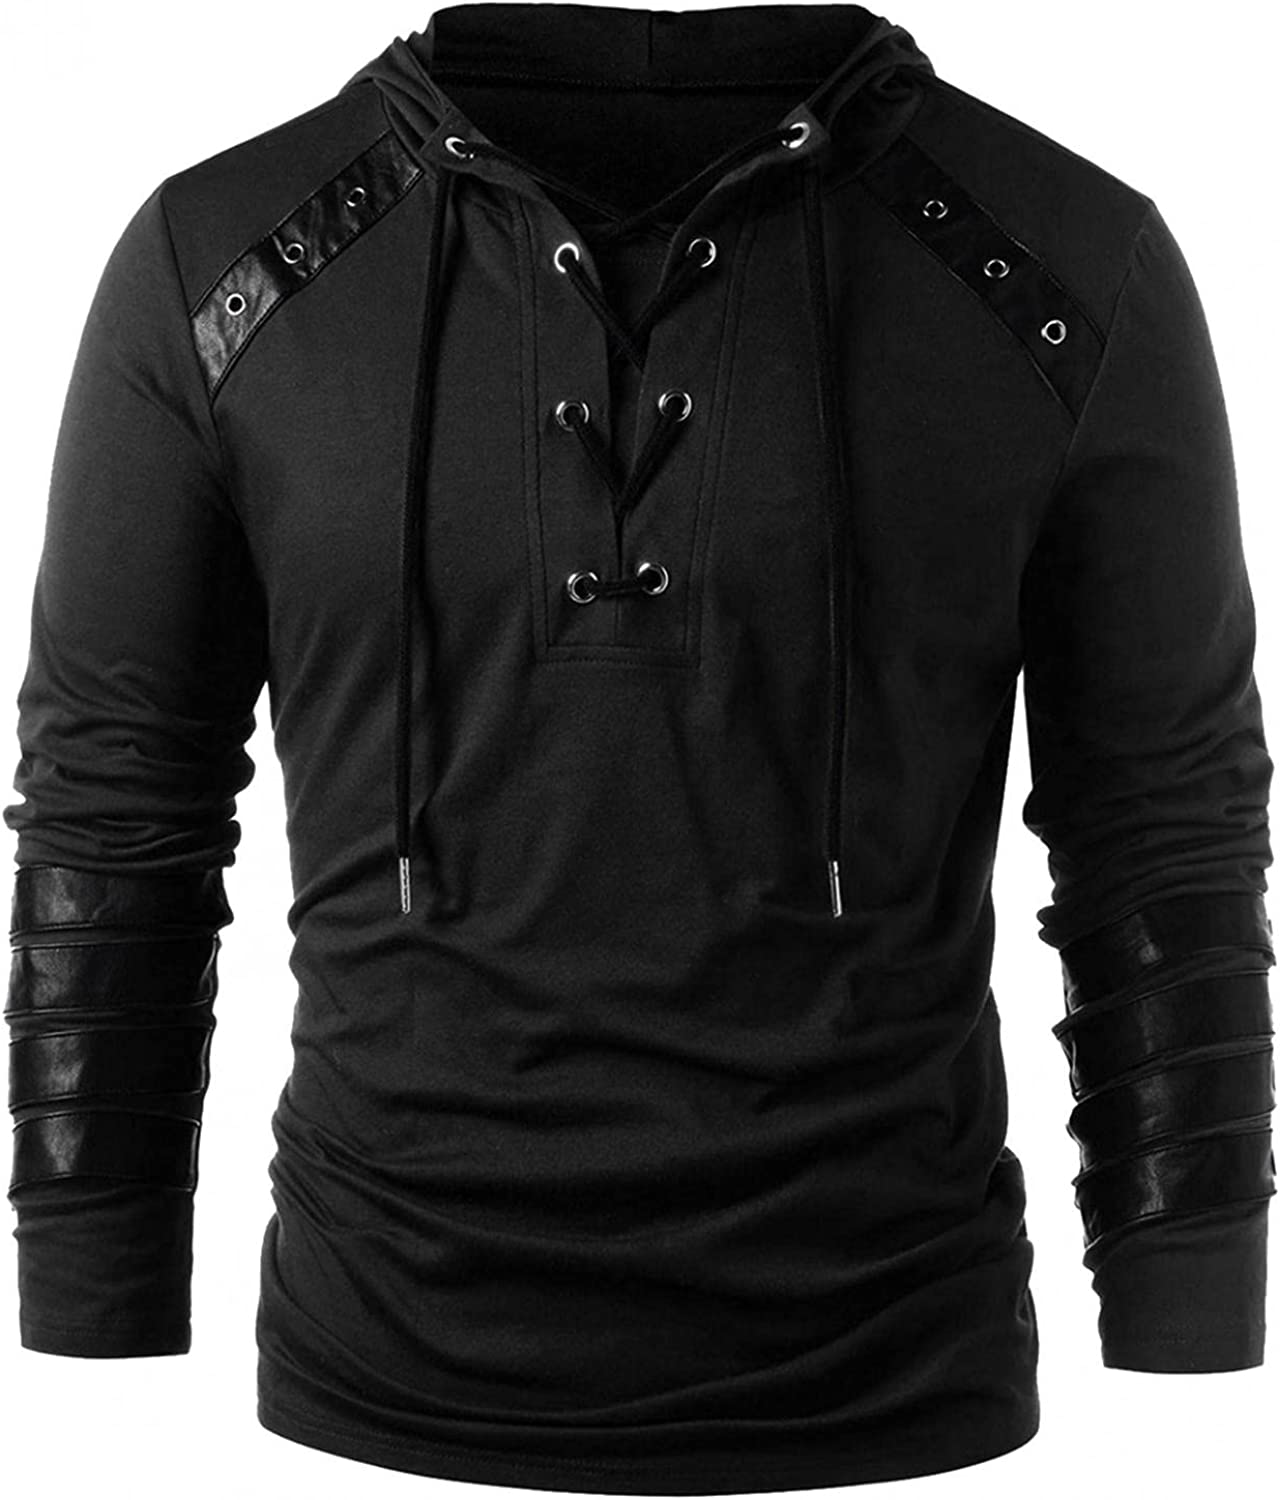 Men Pirate Medieval Shirts Long Sleeve Crew Neck Casual Vintage Cowl Neck T-Shirt Tops Blouse Pullover Jumper Sweatshirt